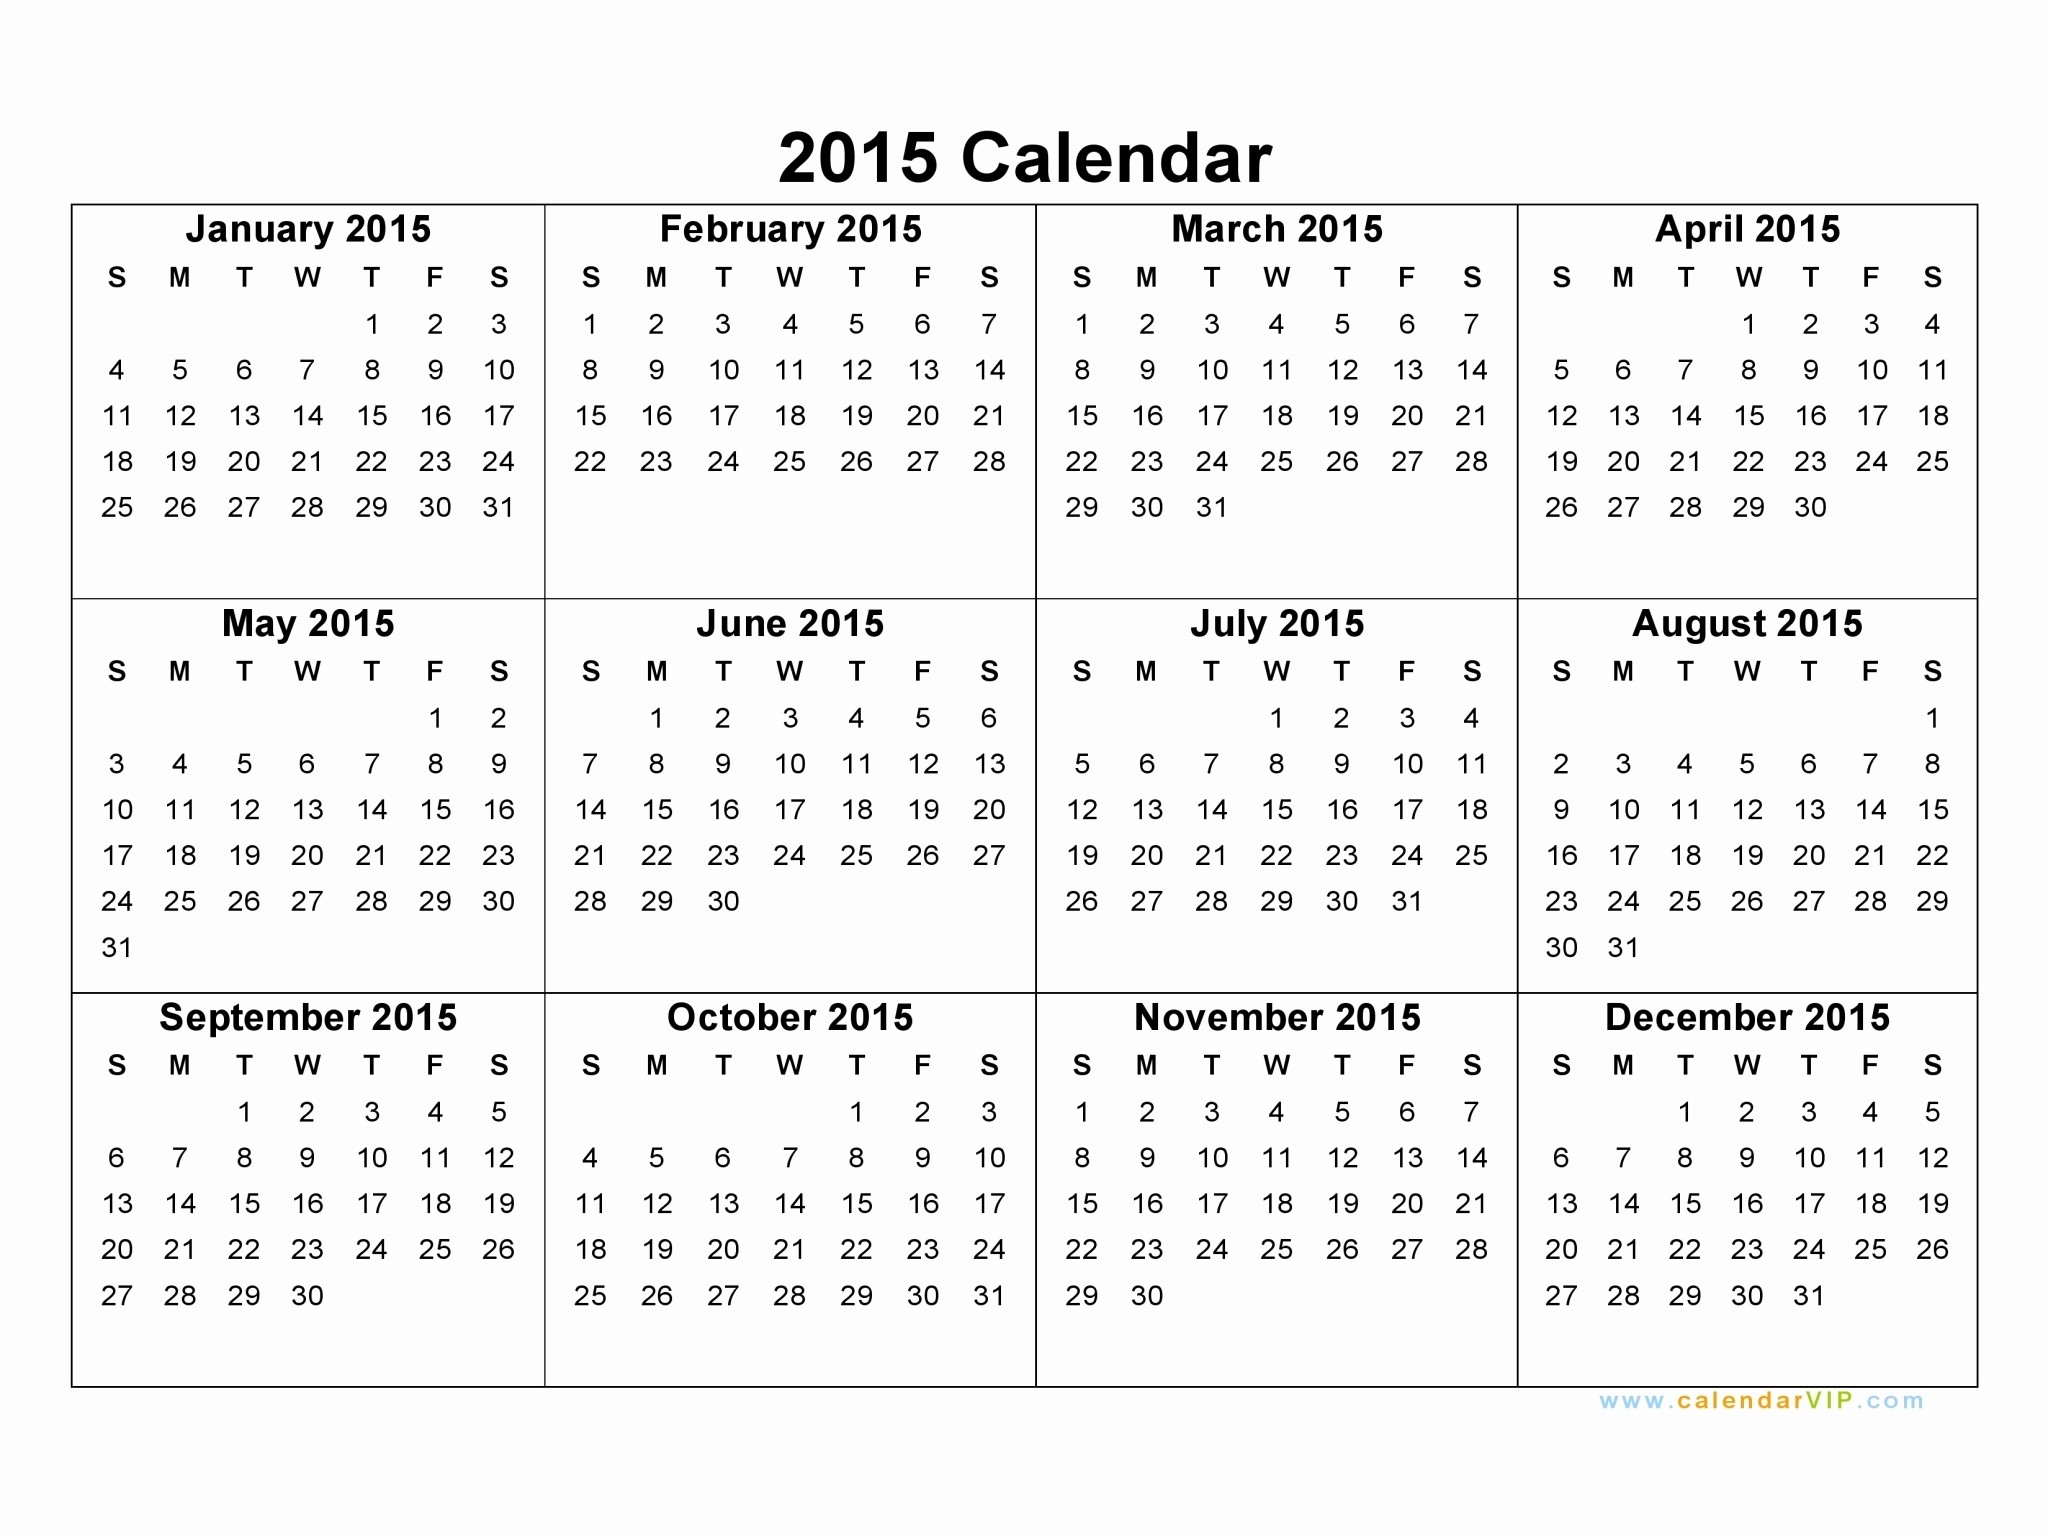 Free 2015 Yearly Calendar Template Luxury 2015 Calendar Template Beepmunk